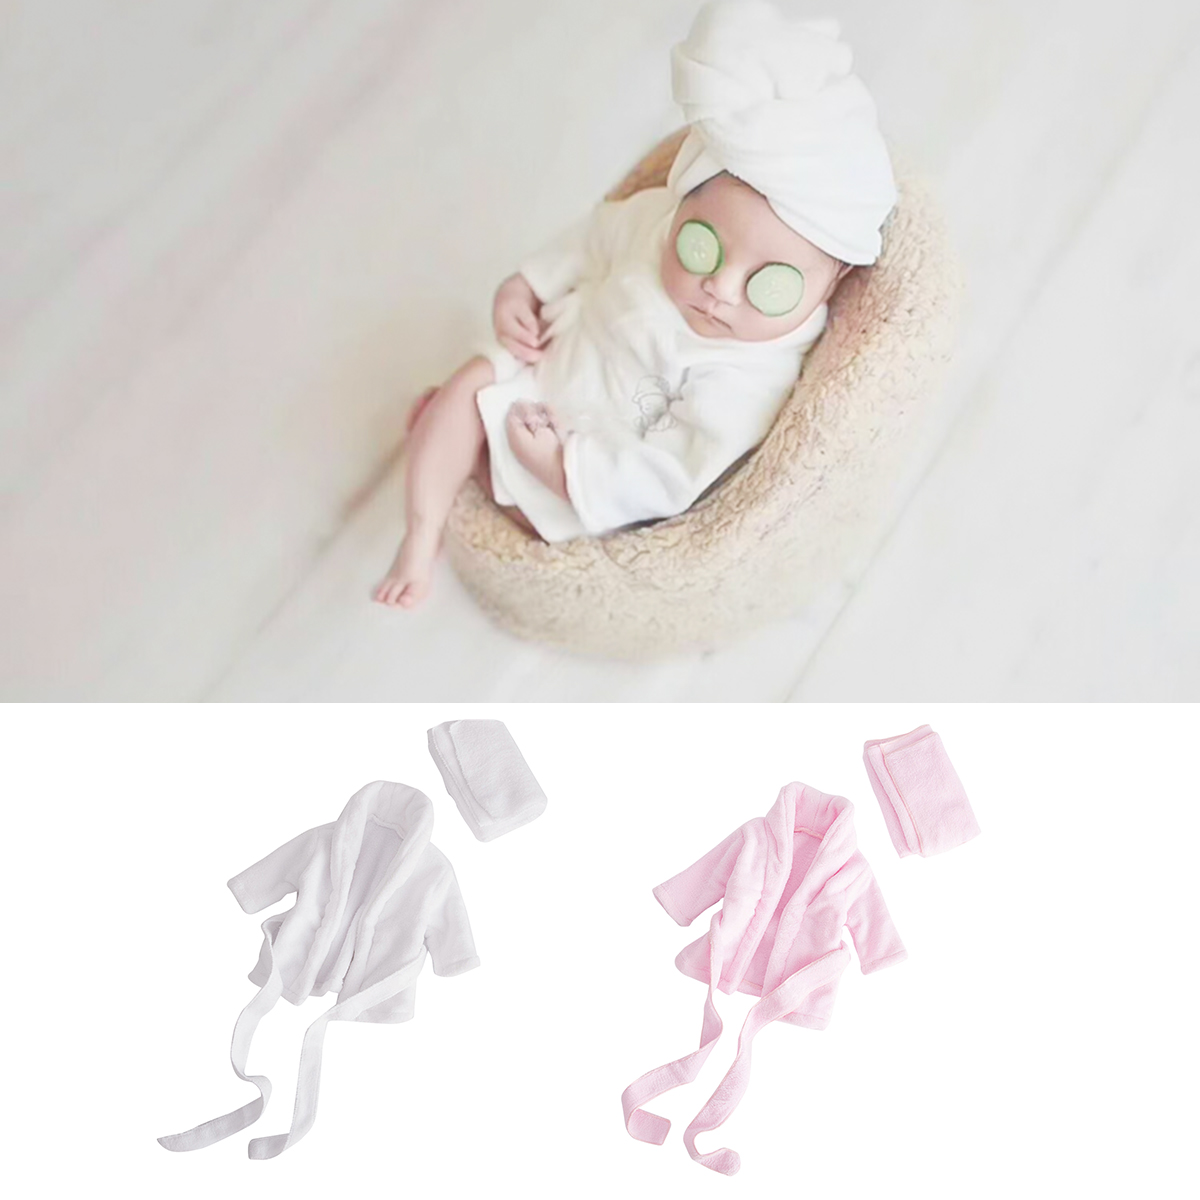 2019 Soft Flannel Bathrobes Newborn Photography Props Costumes Baby Clothes 2pcs Set Baby Photo Accessories Baby Boy Girl Outfit